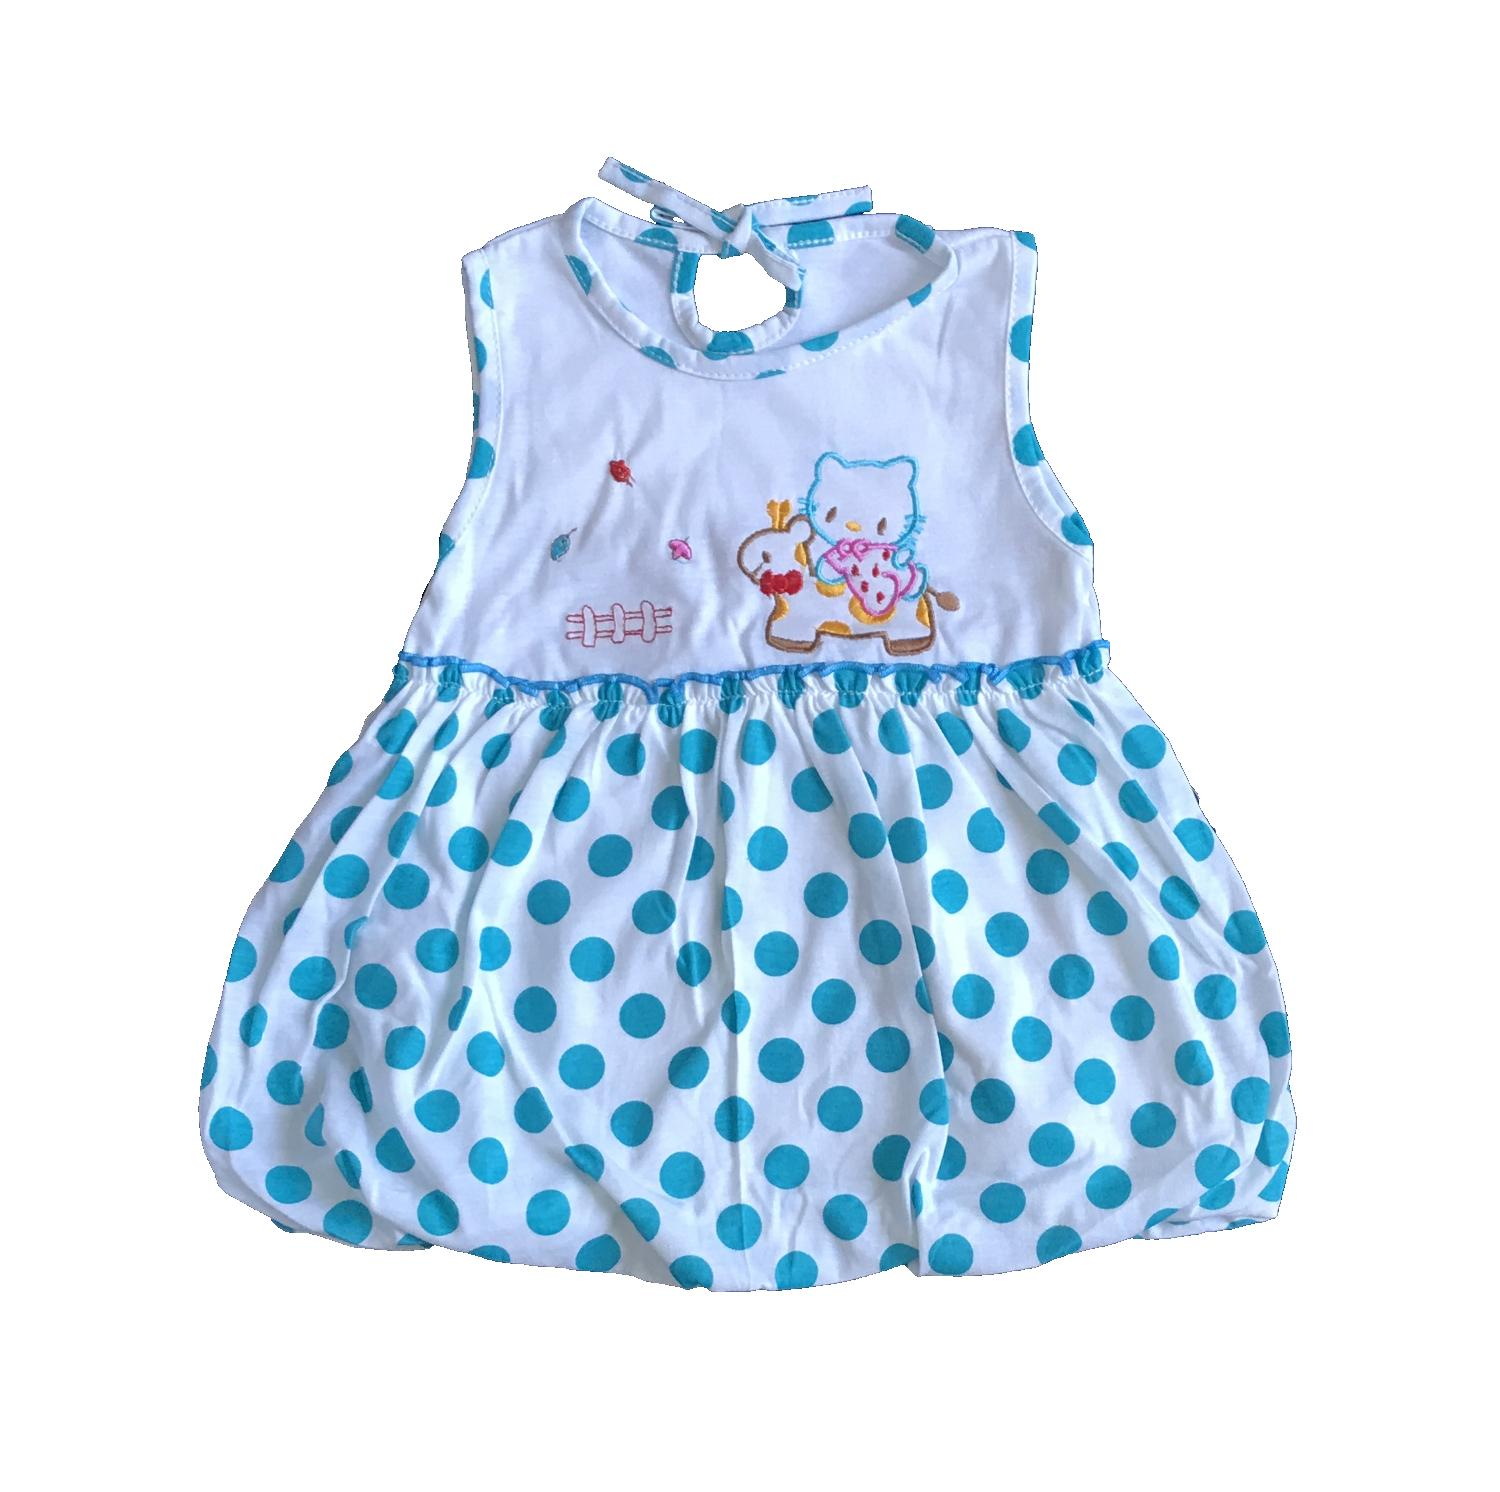 BAYIe - Baju bayi Perempuan Dress Ballon motif HELLO KITTY PLANET KIDS usia 3-12